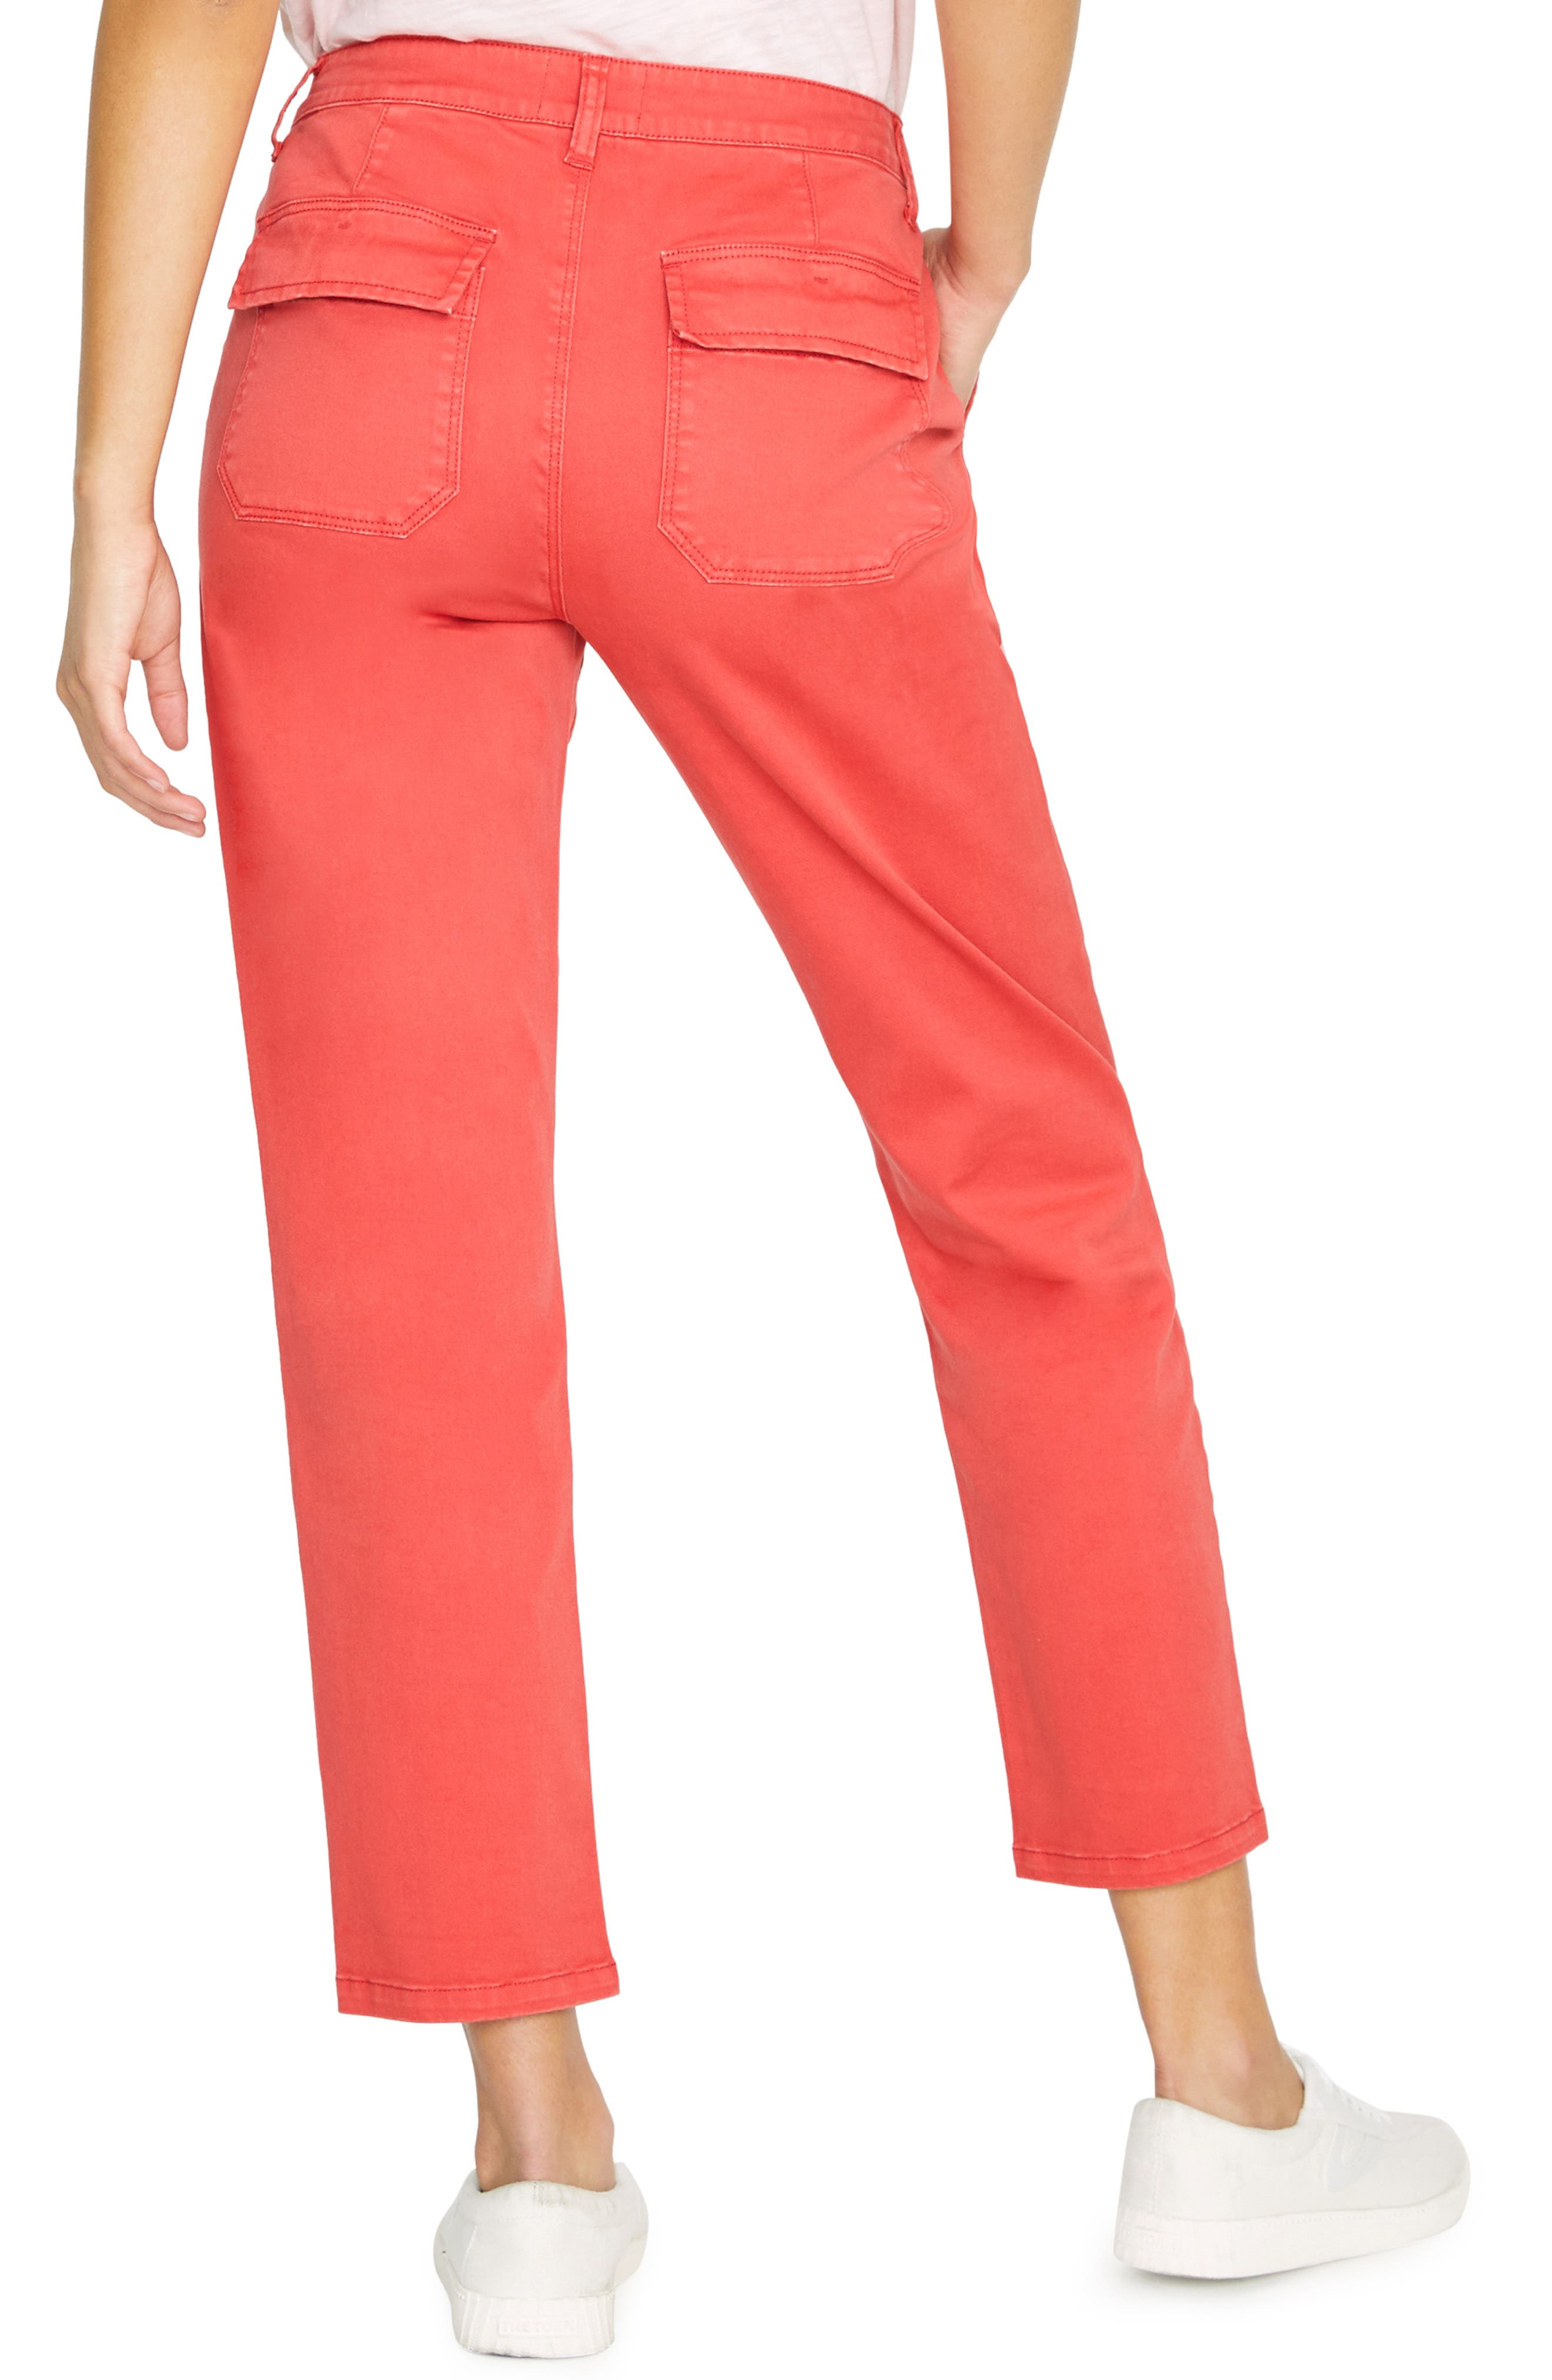 Peace Chino Pants in Poppy Red